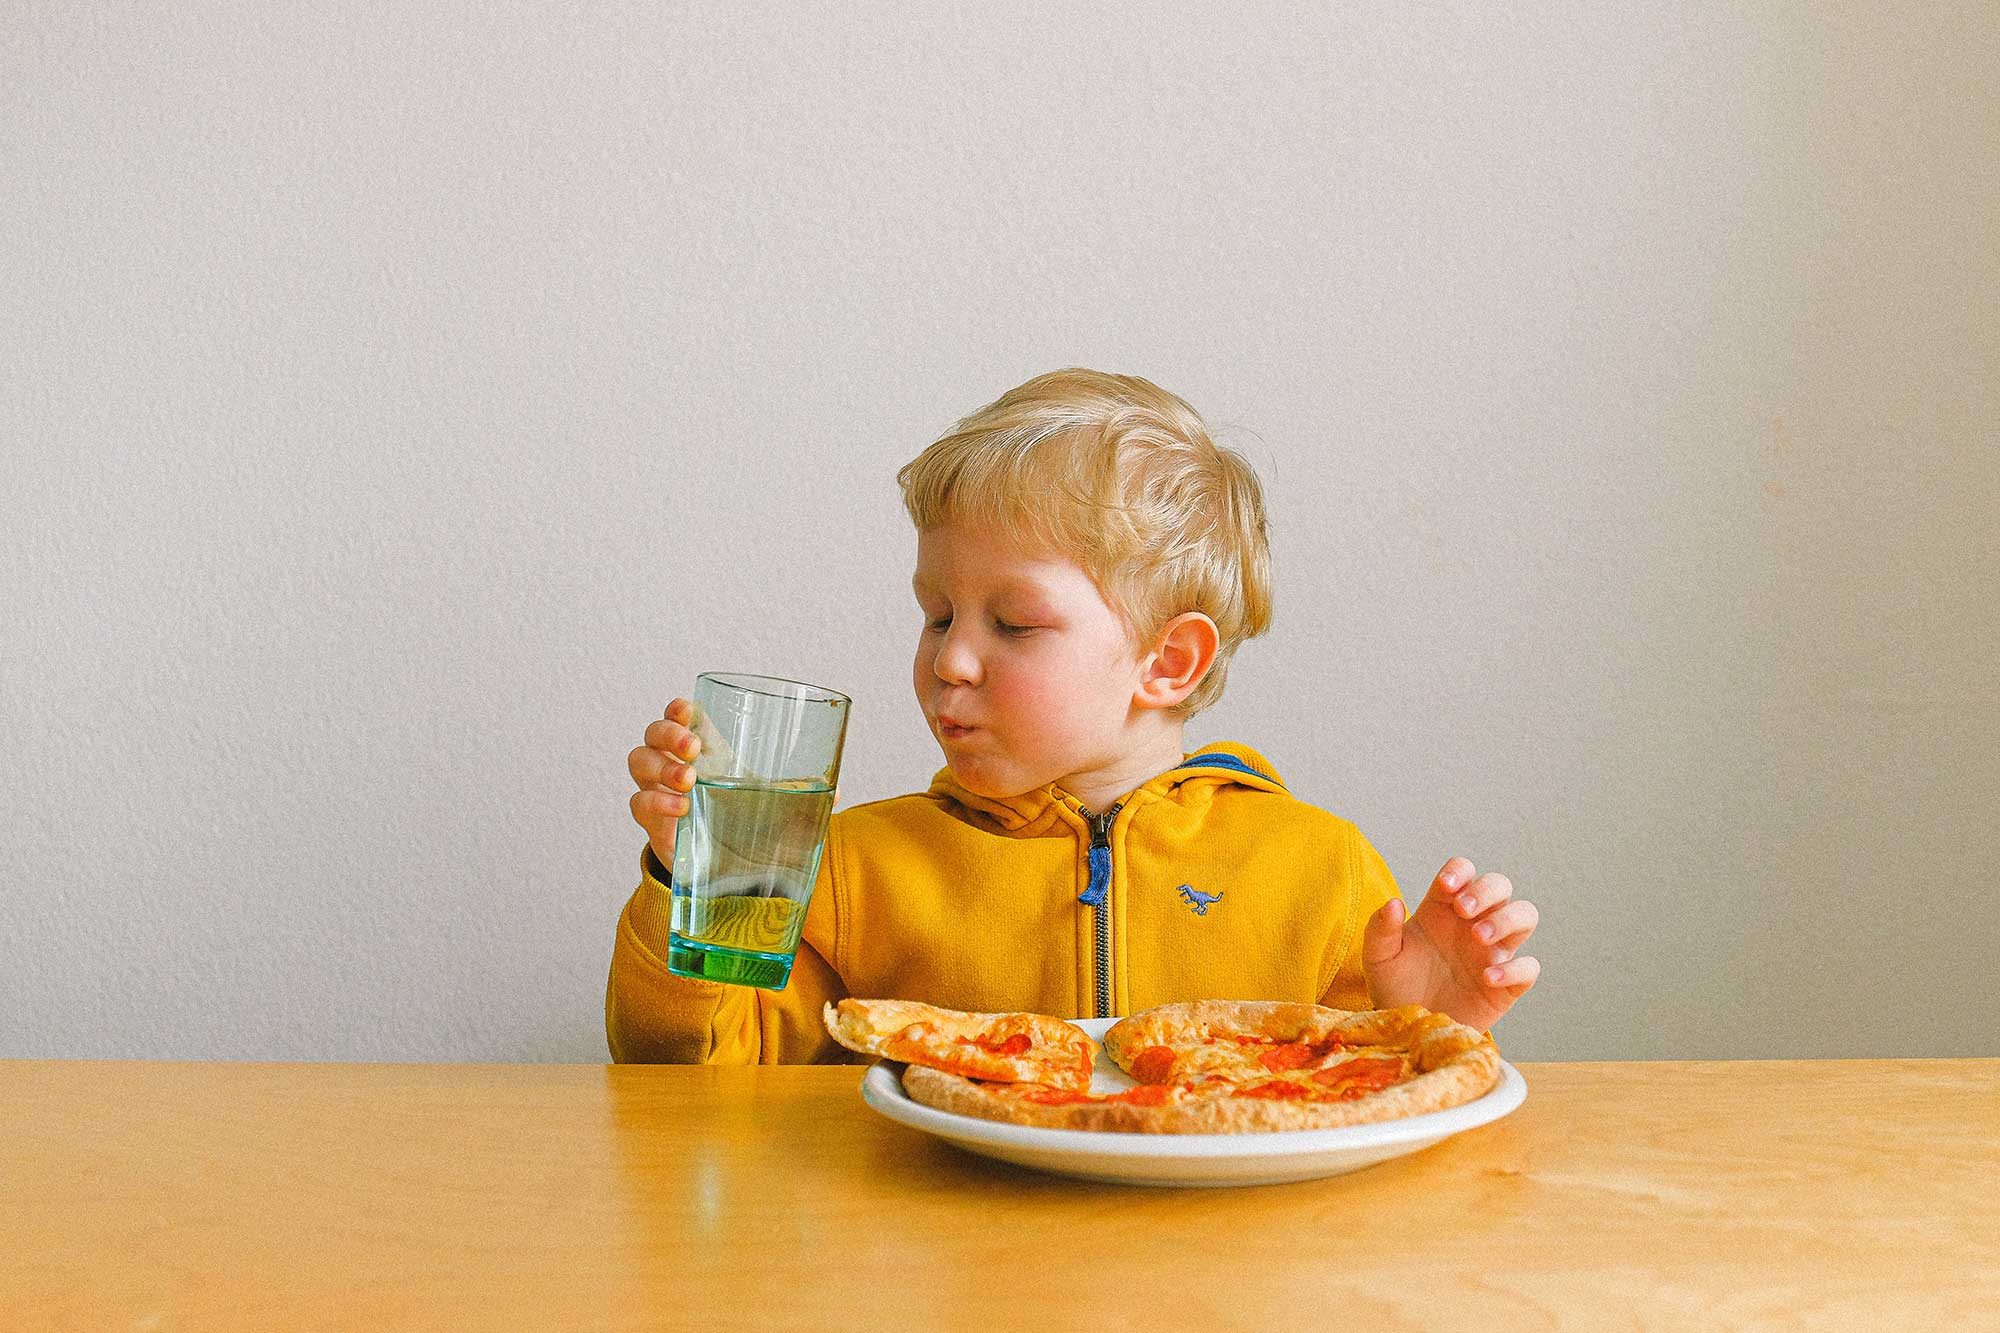 Toddler drinking out of a cup and eating pizza